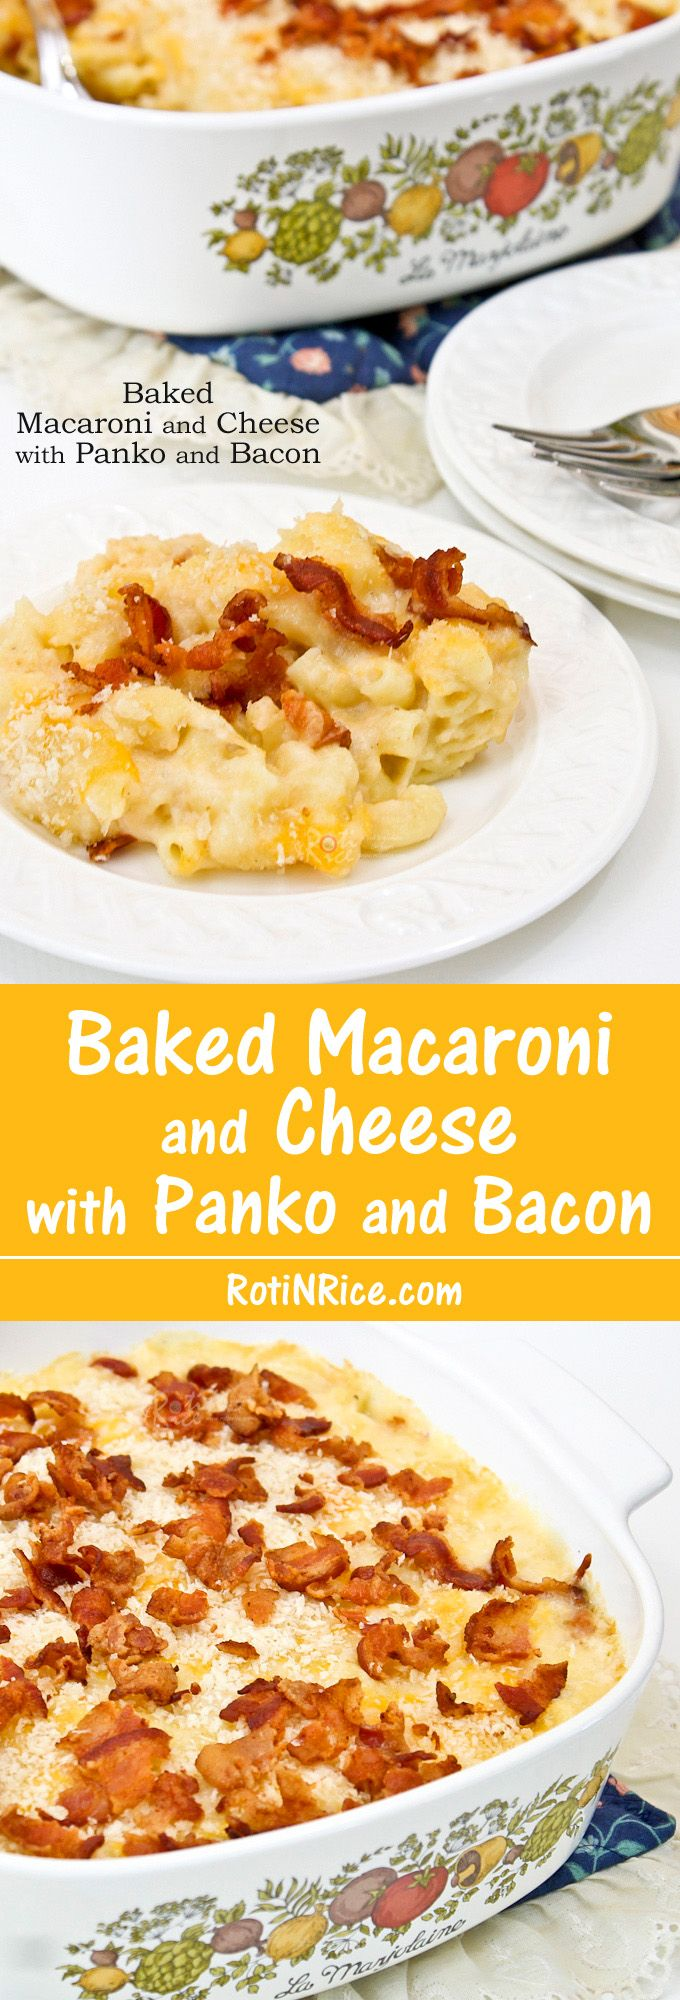 ... Baked Macaroni on Pinterest | Macaroni And Cheese, Cheese and Macaroni